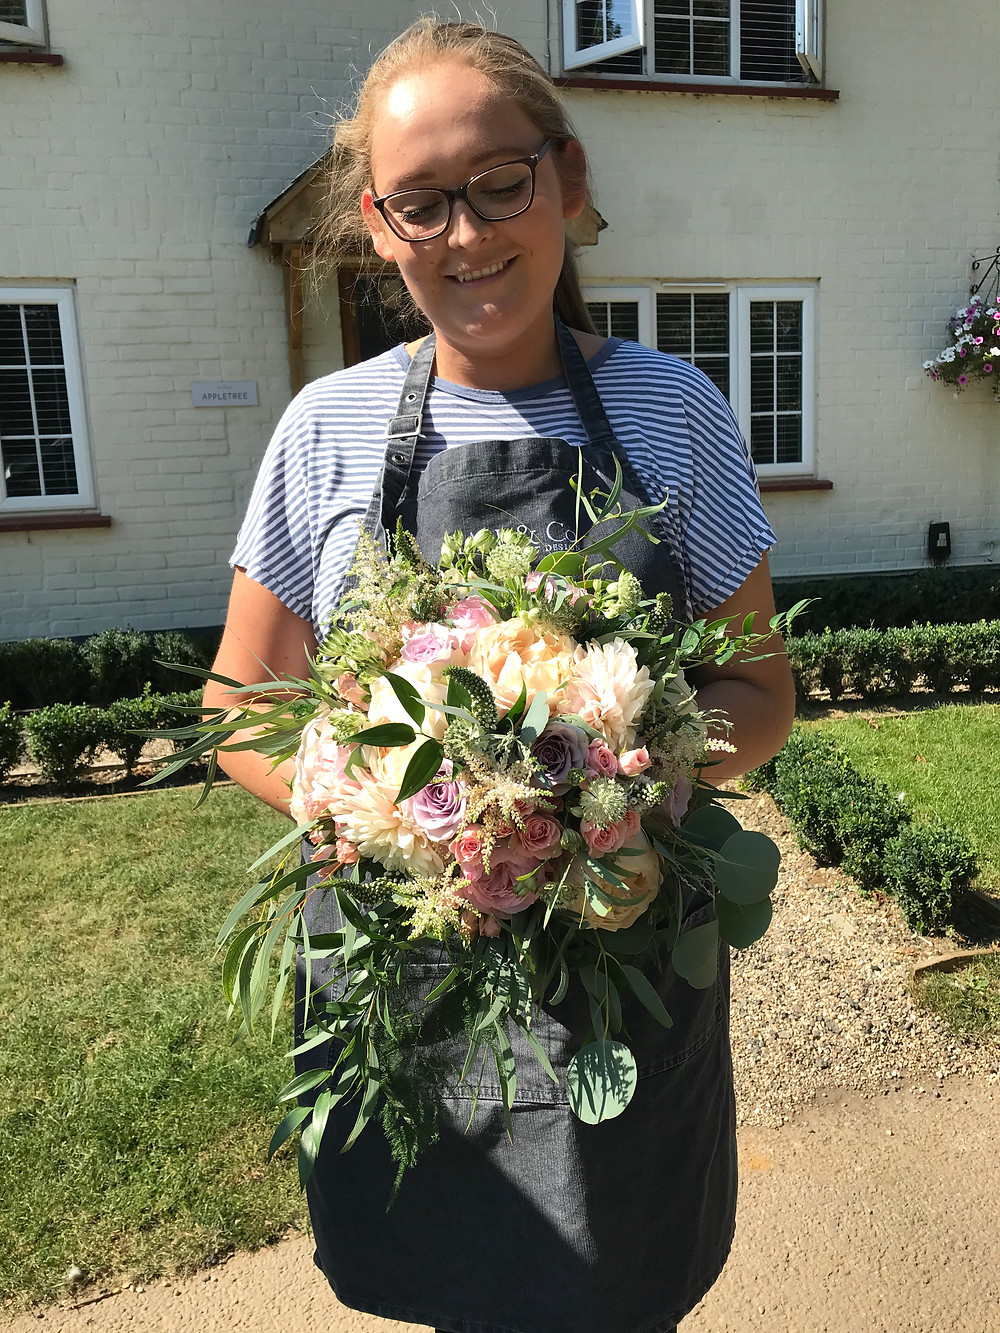 Kerry delivering a bridal bouquet on the morning of the wedding